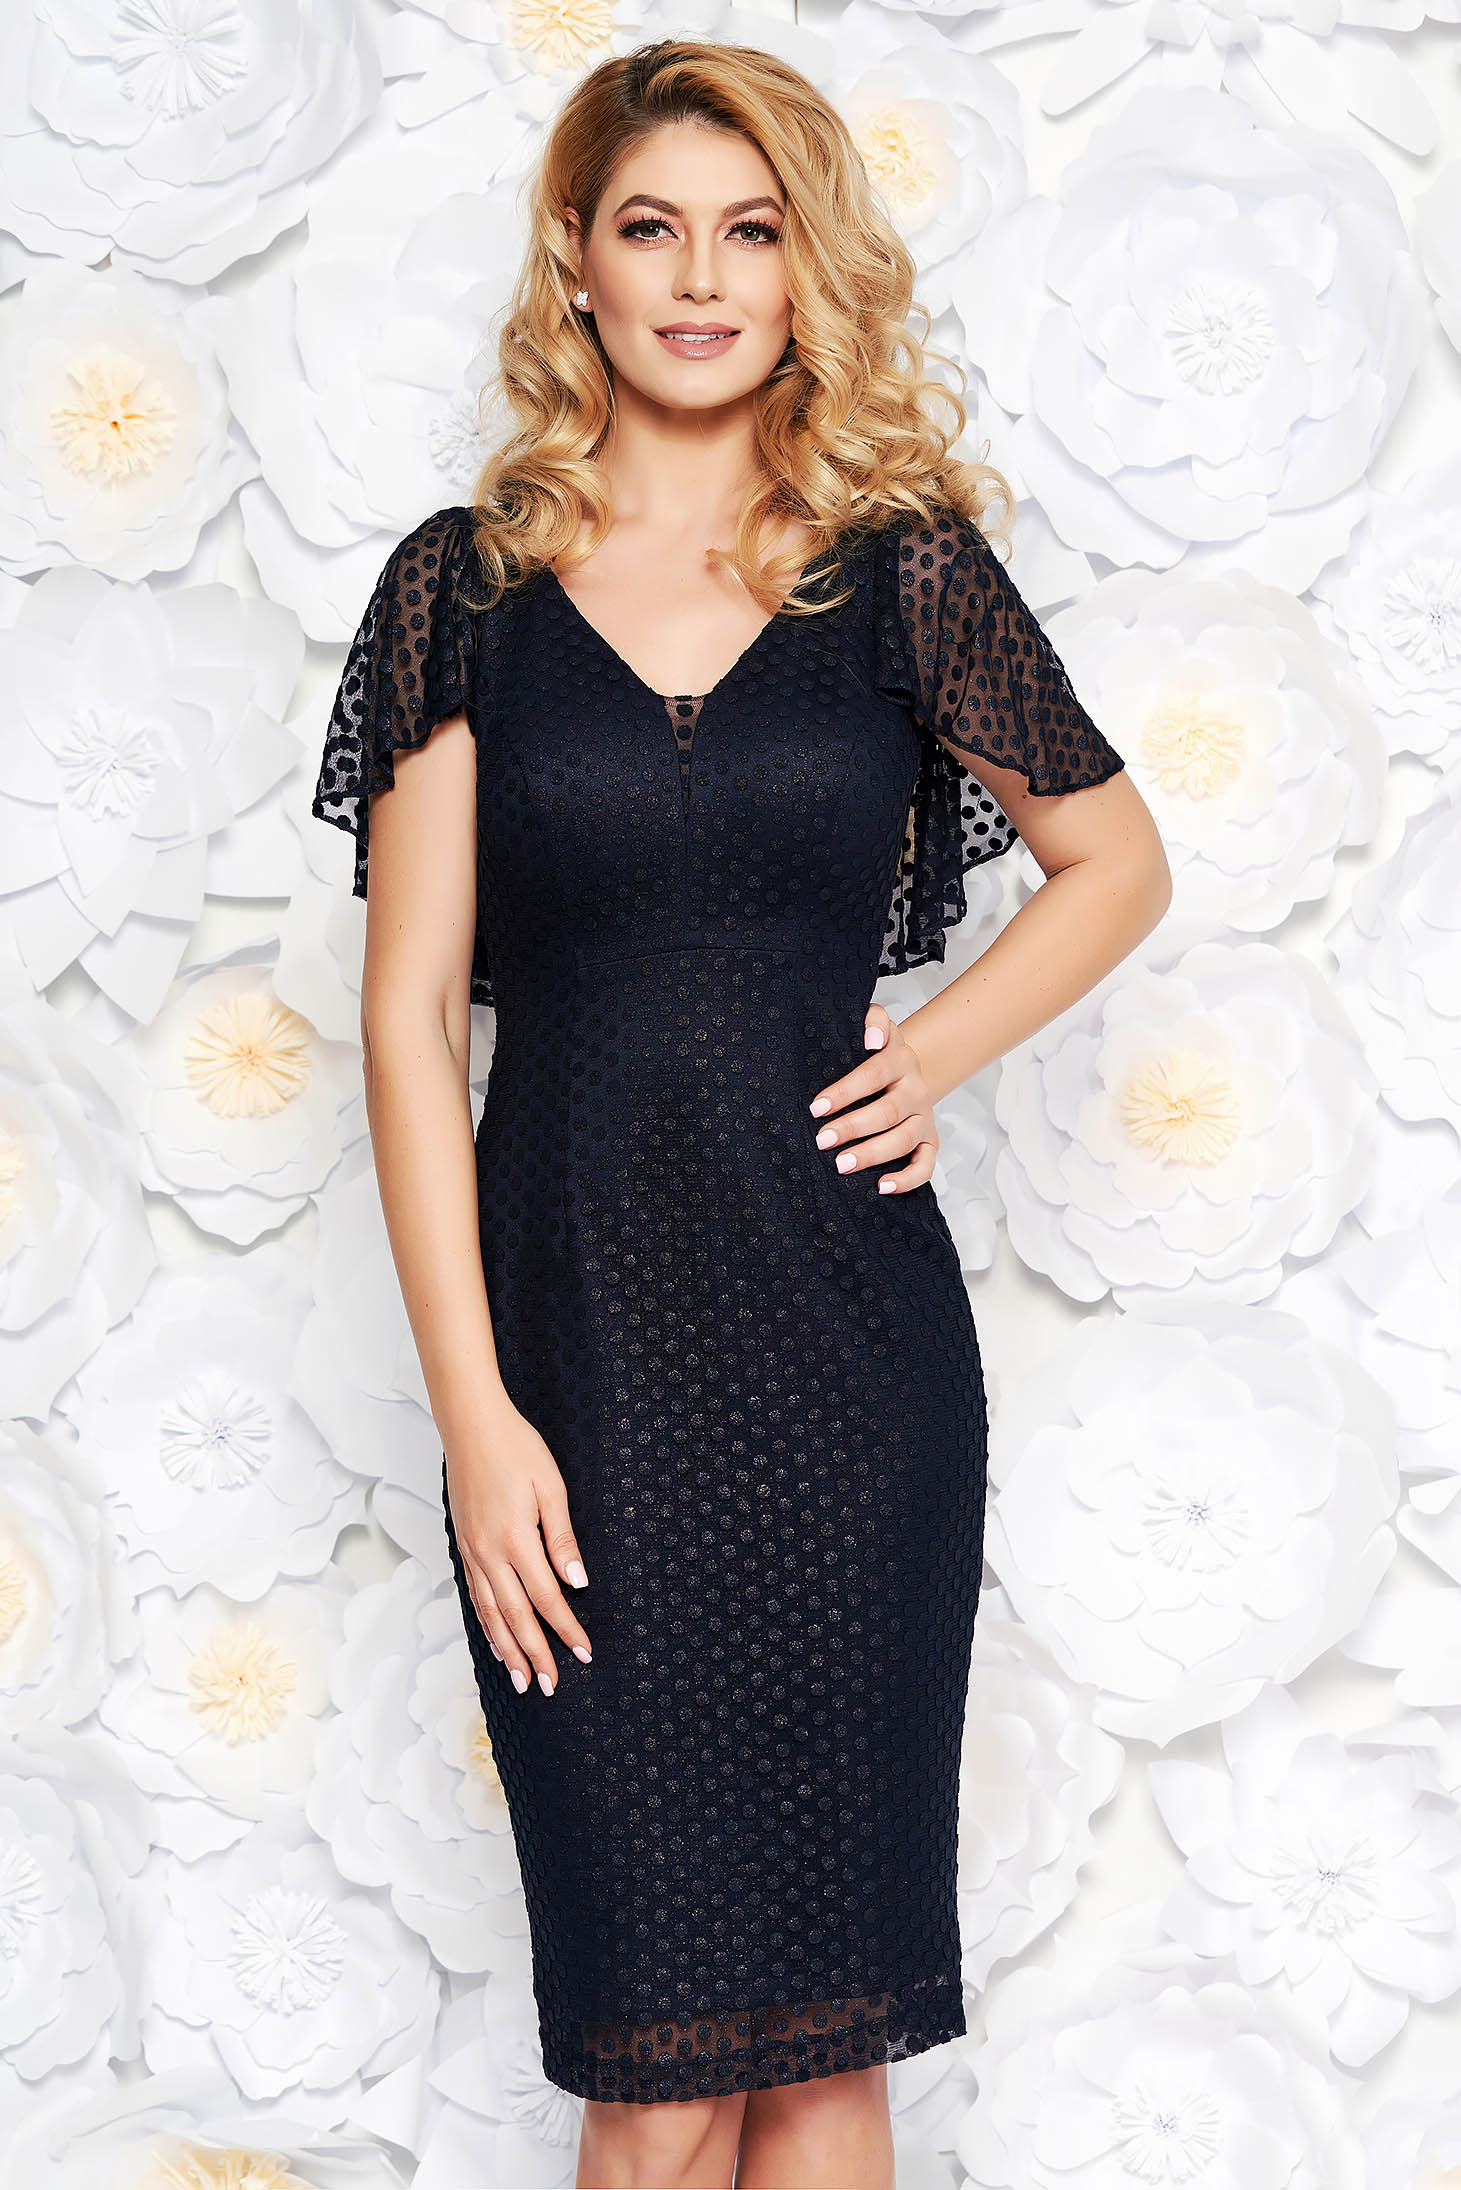 Darkblue occasional midi pencil dress from tulle with inside lining with glitter details